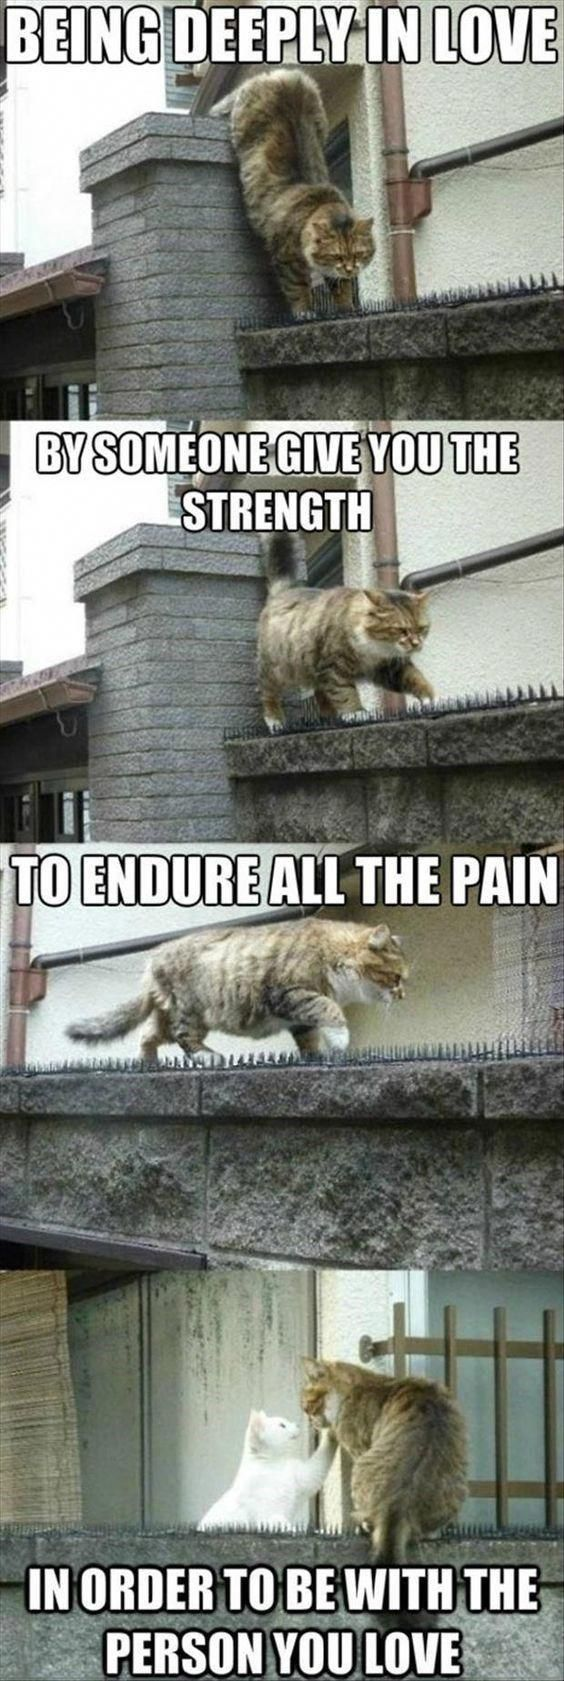 Here Is Your Daily Treat Of Cat Memes #catsandkittens